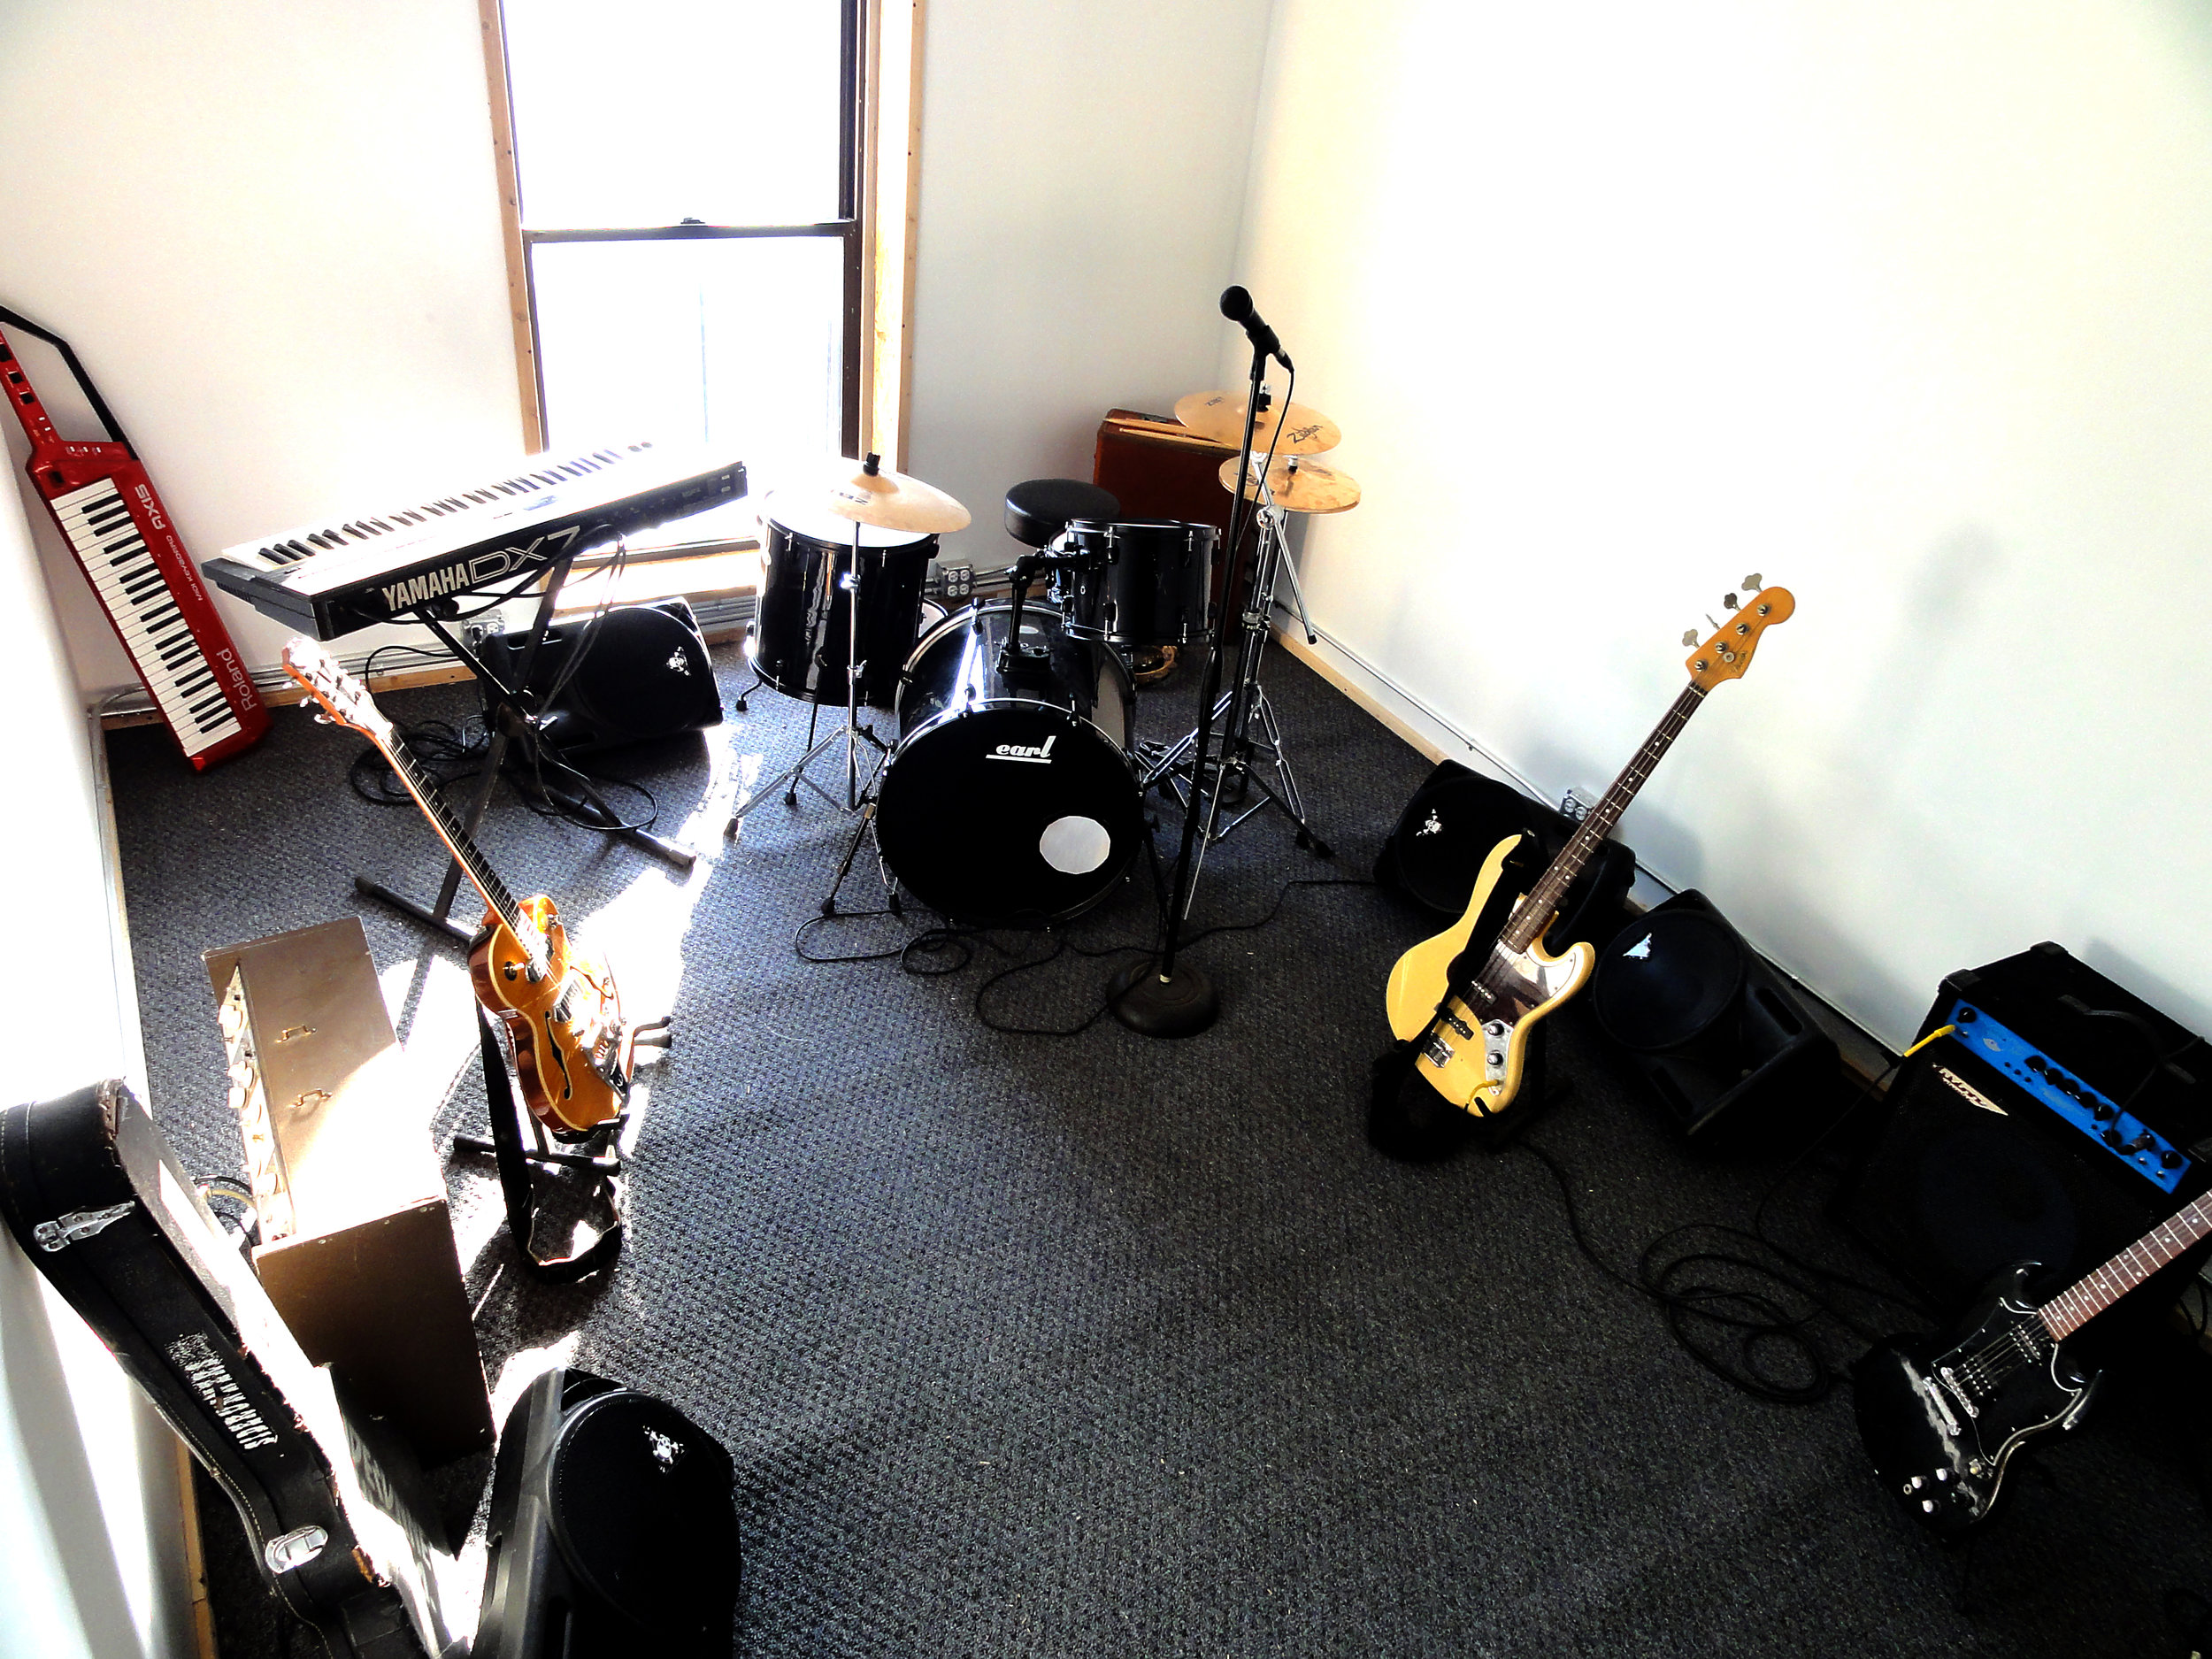 Studio-c7: The Office - We provide a guitar amp, a bass amp, a drum kit. If you'd like to use any special gear, including our Hammond C3 organ, there is an additional $5 charge per piece of gear.